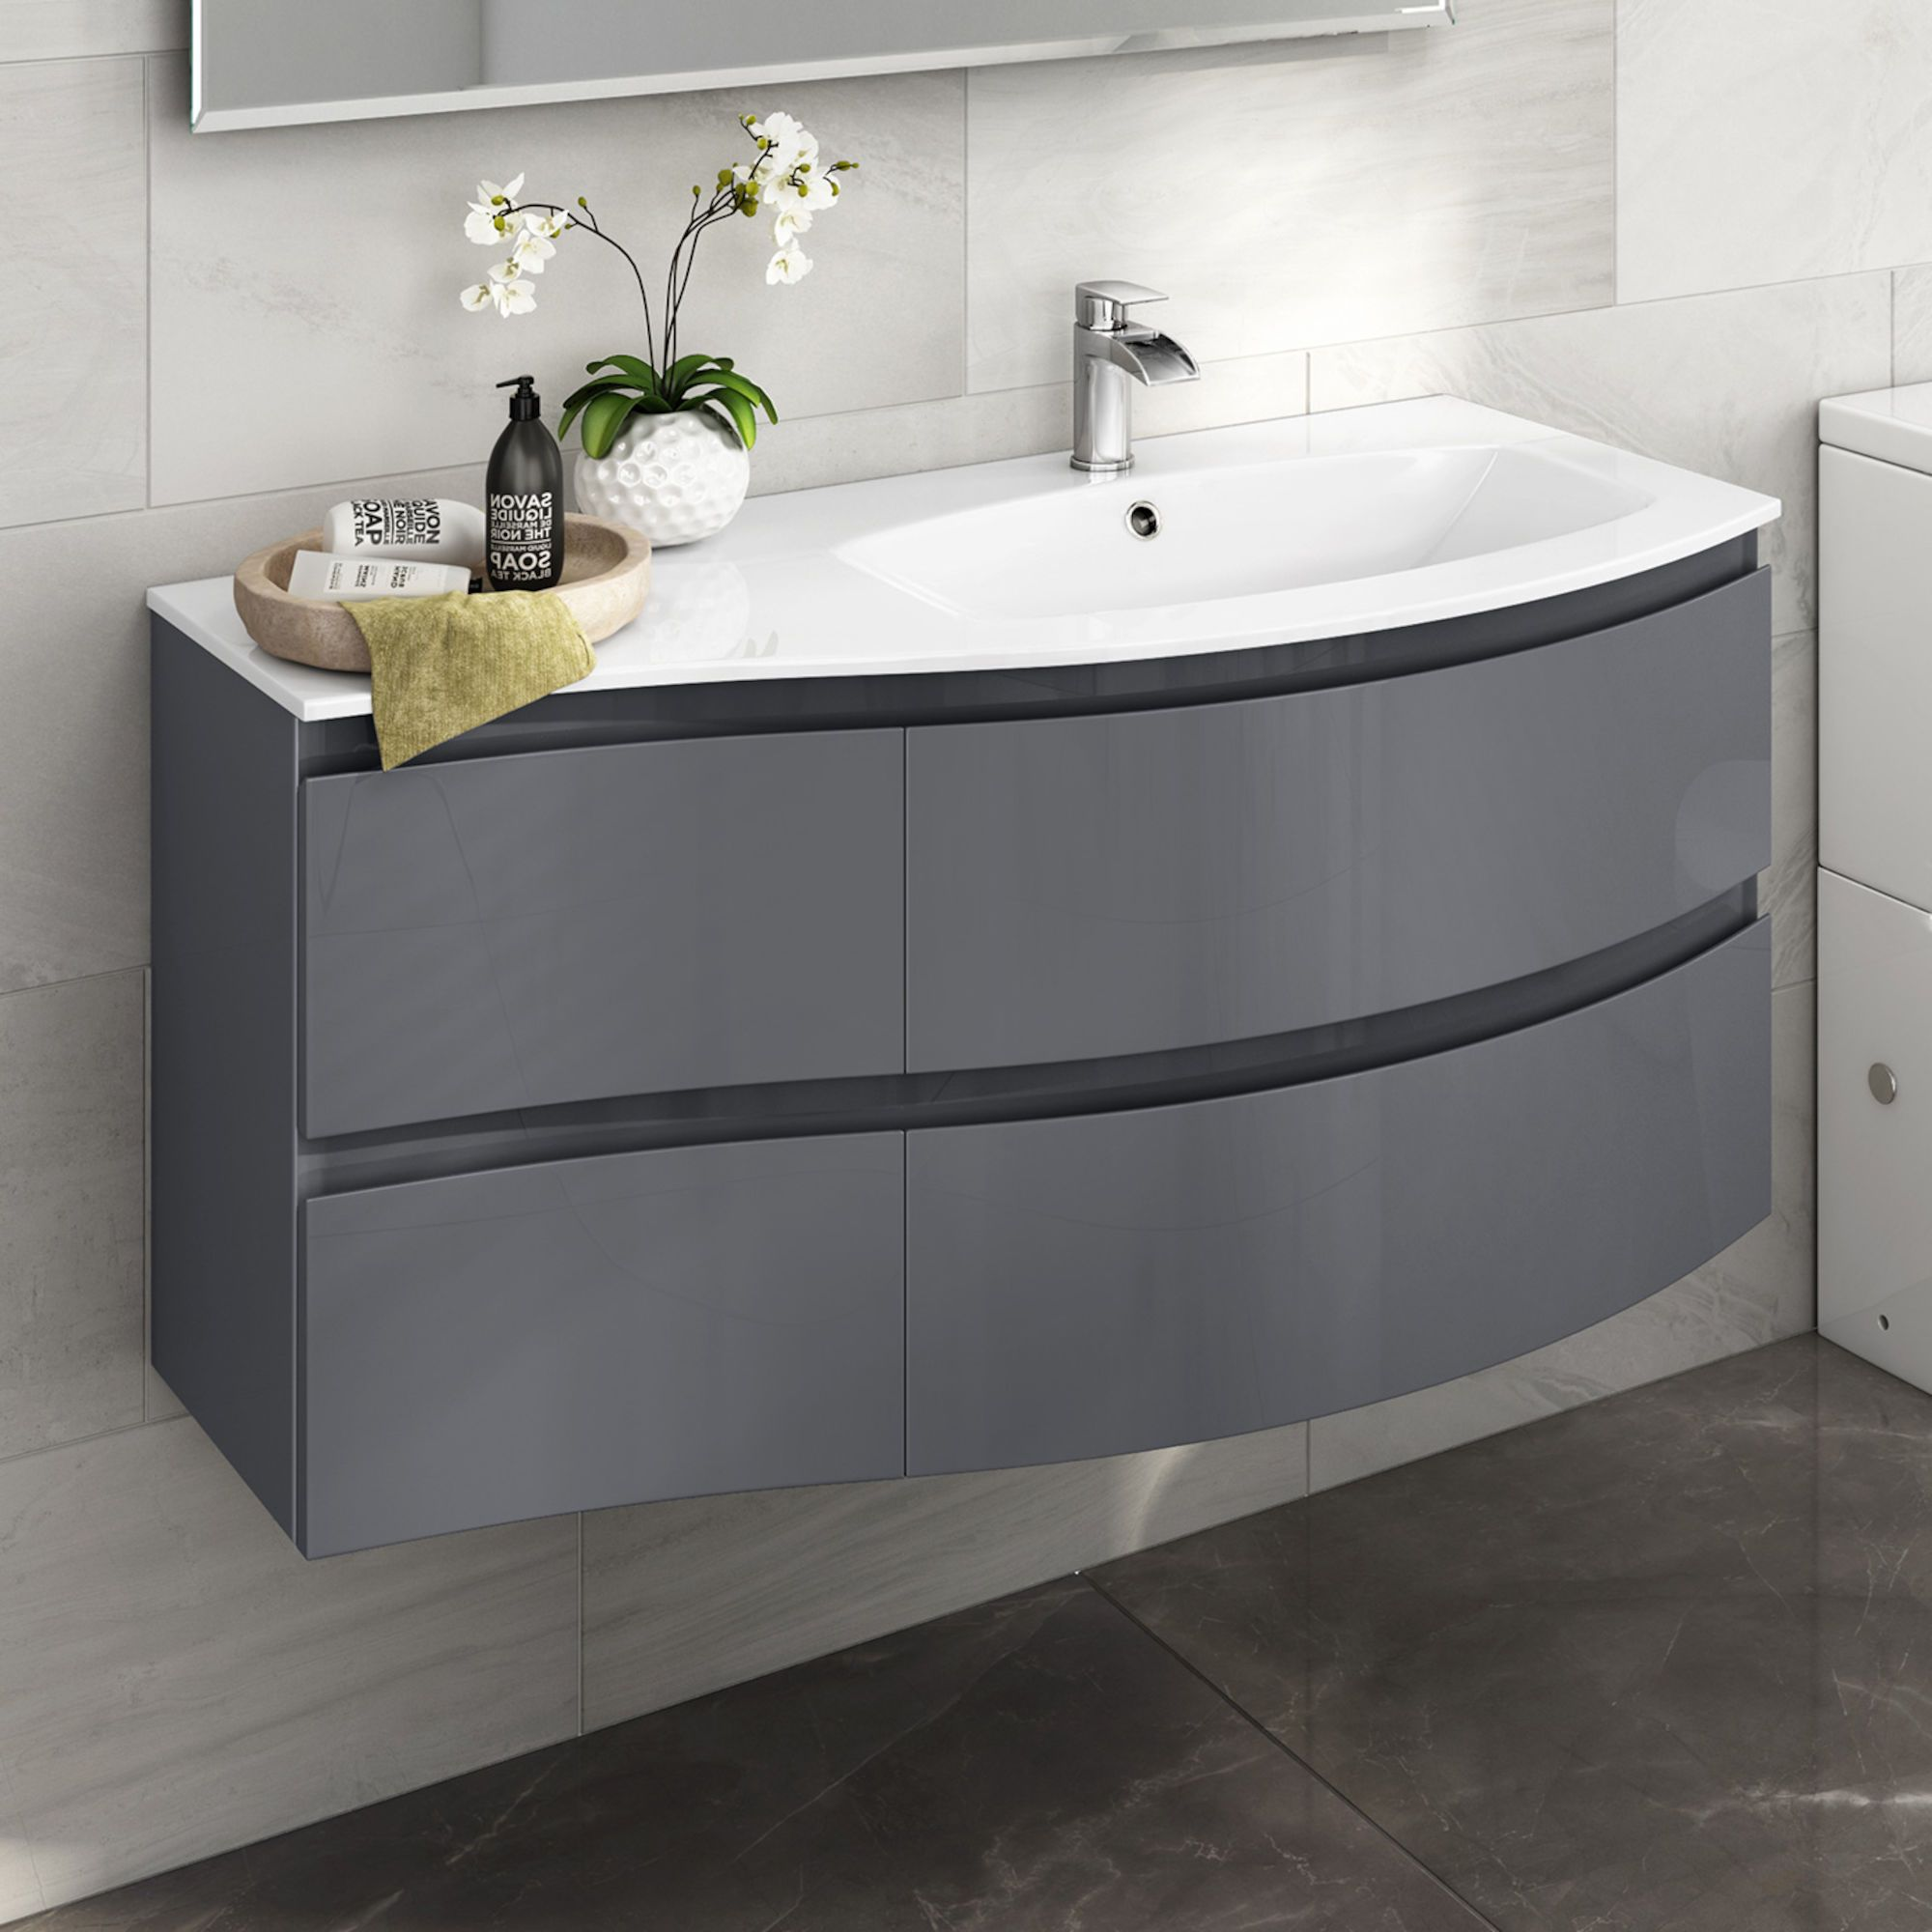 White Double Basin Bathroom Vanity Unit Sink Storage Modern